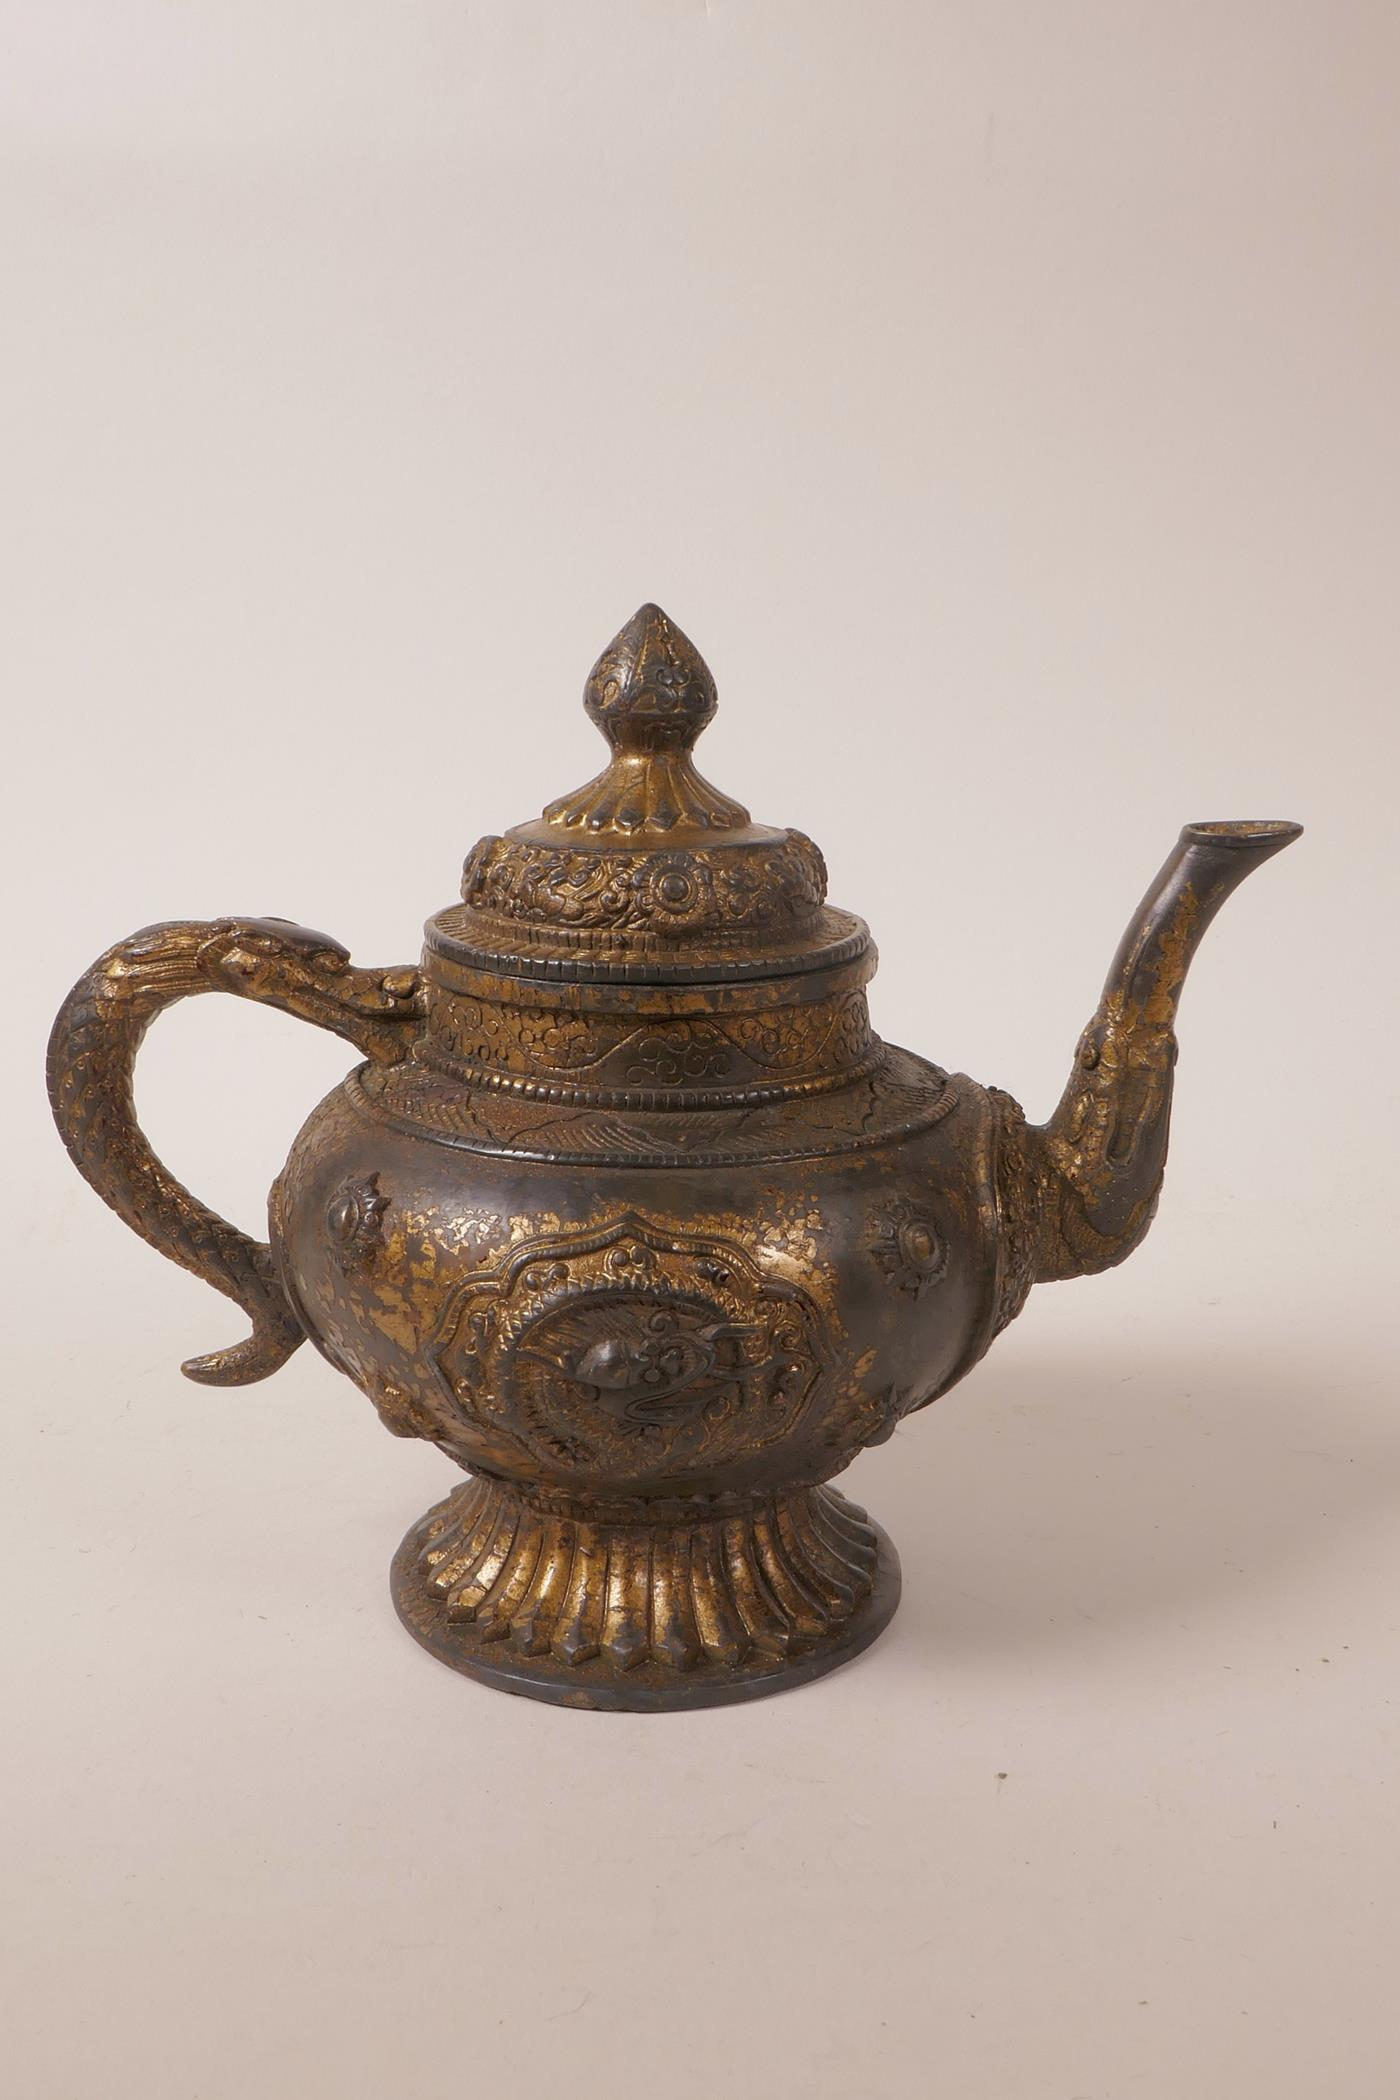 Lot 35 - A Chinese gilt and bronzed metal teapot with raised dragon and floral decoration, mark to base,